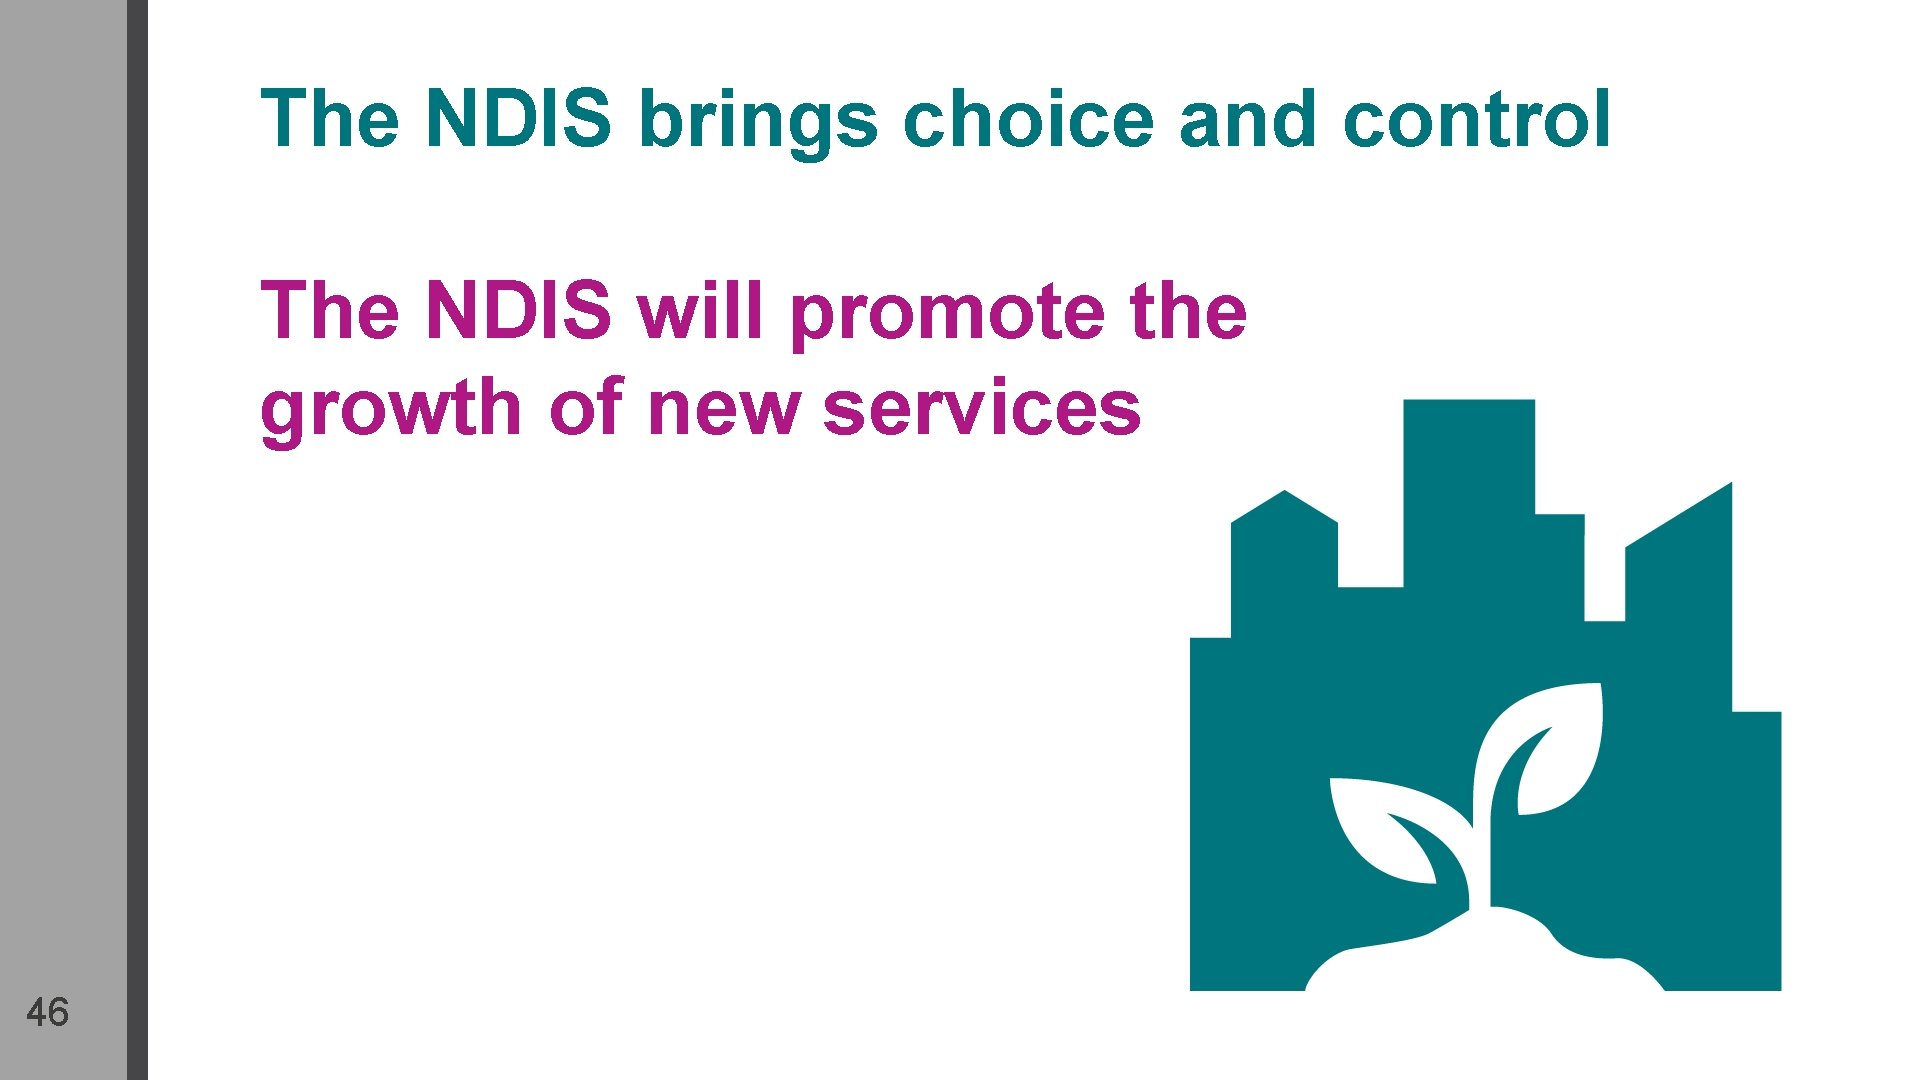 The NDIS brings choice and control The NDIS will promote the growth of new